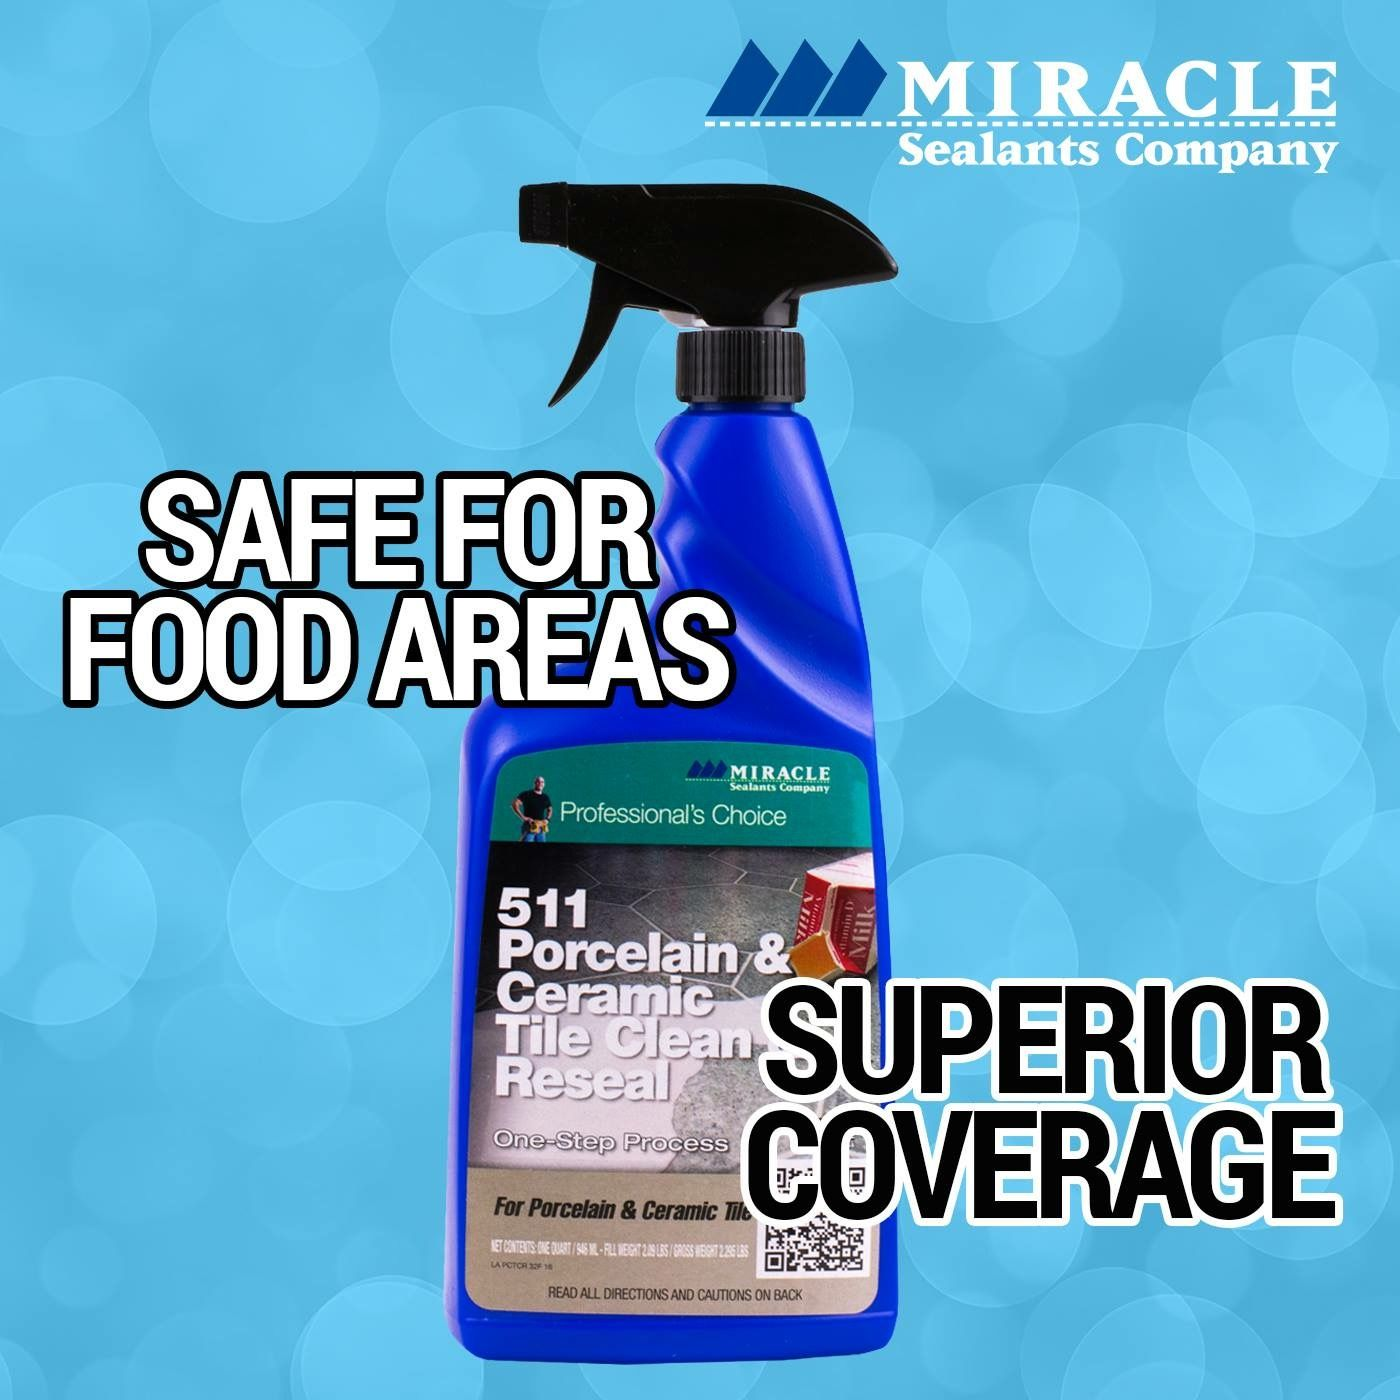 Get superior coverage with miracle sealants 511 porcelain ceramic get superior coverage with miracle sealants 511 porcelain ceramic tile clean reseal learn dailygadgetfo Images